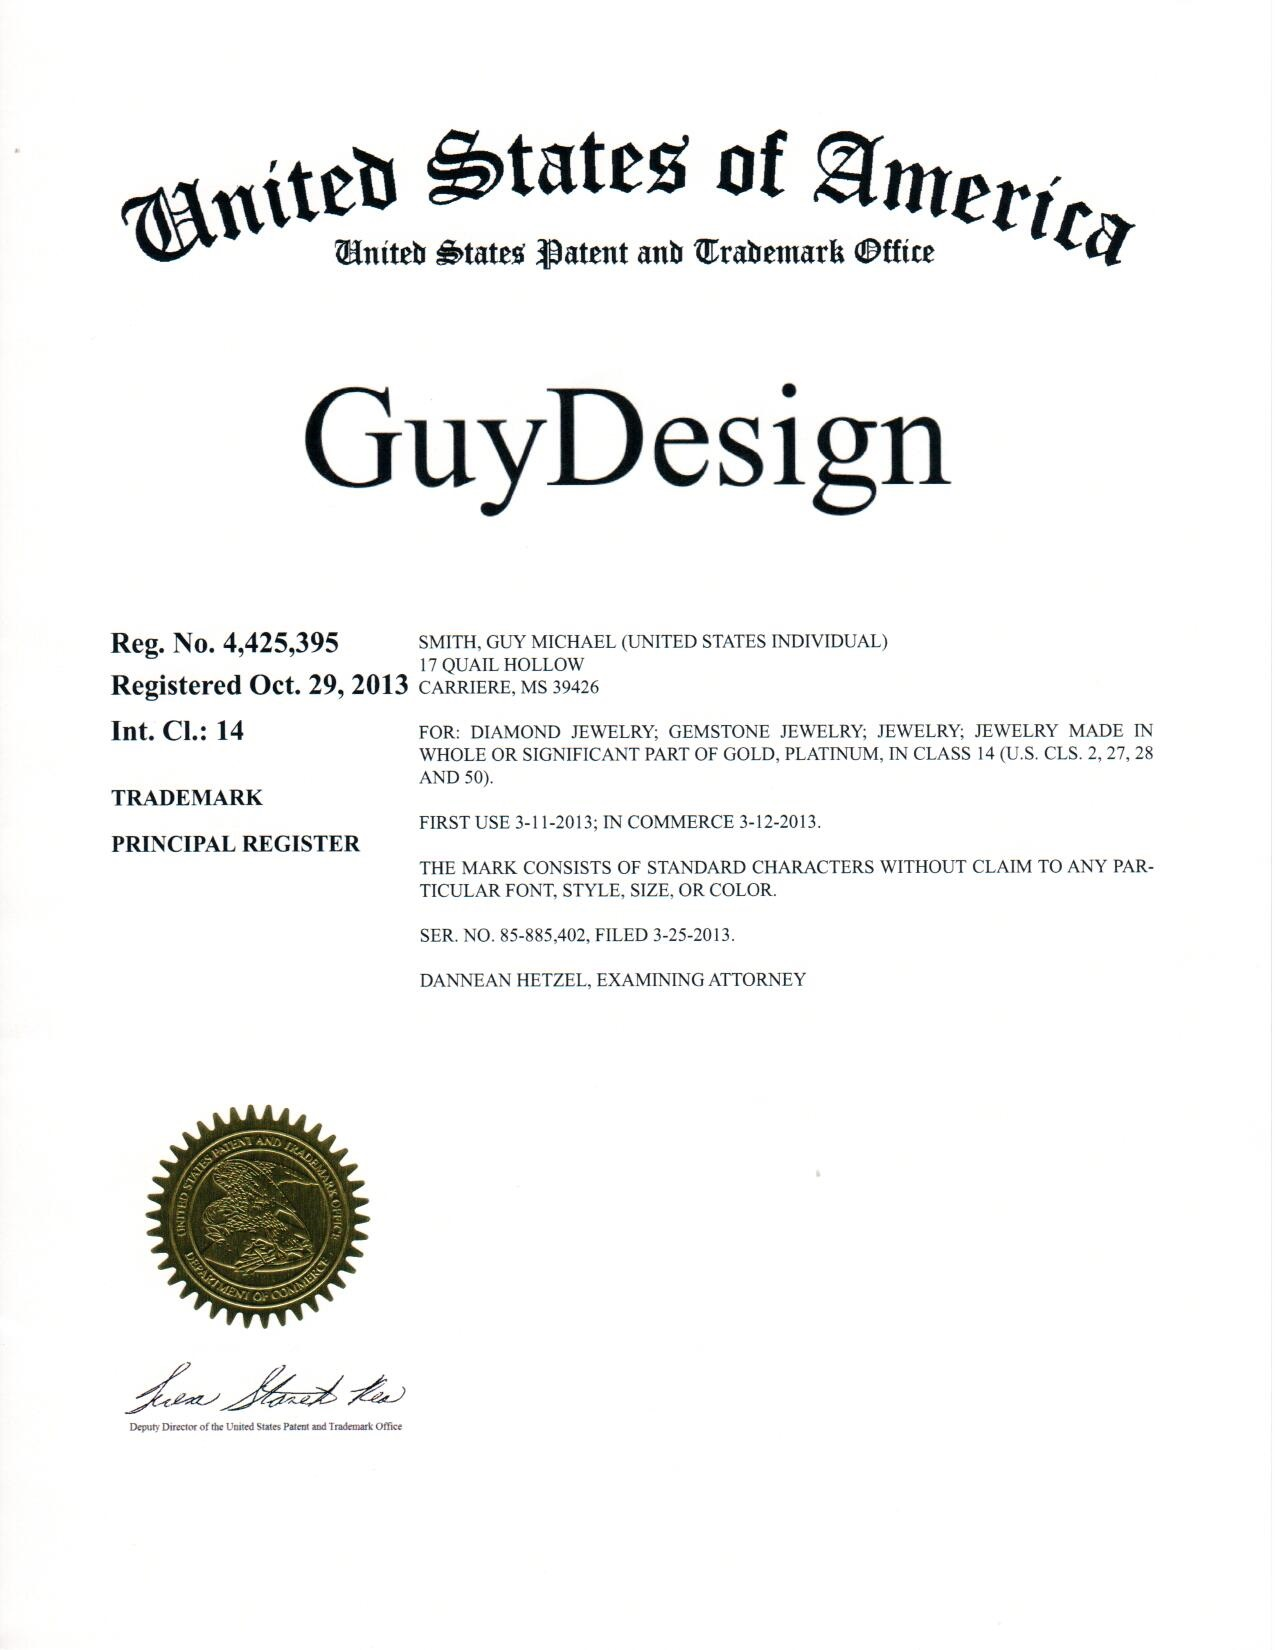 guydesign-international-registered-trademark-brand-since-2013.jpg